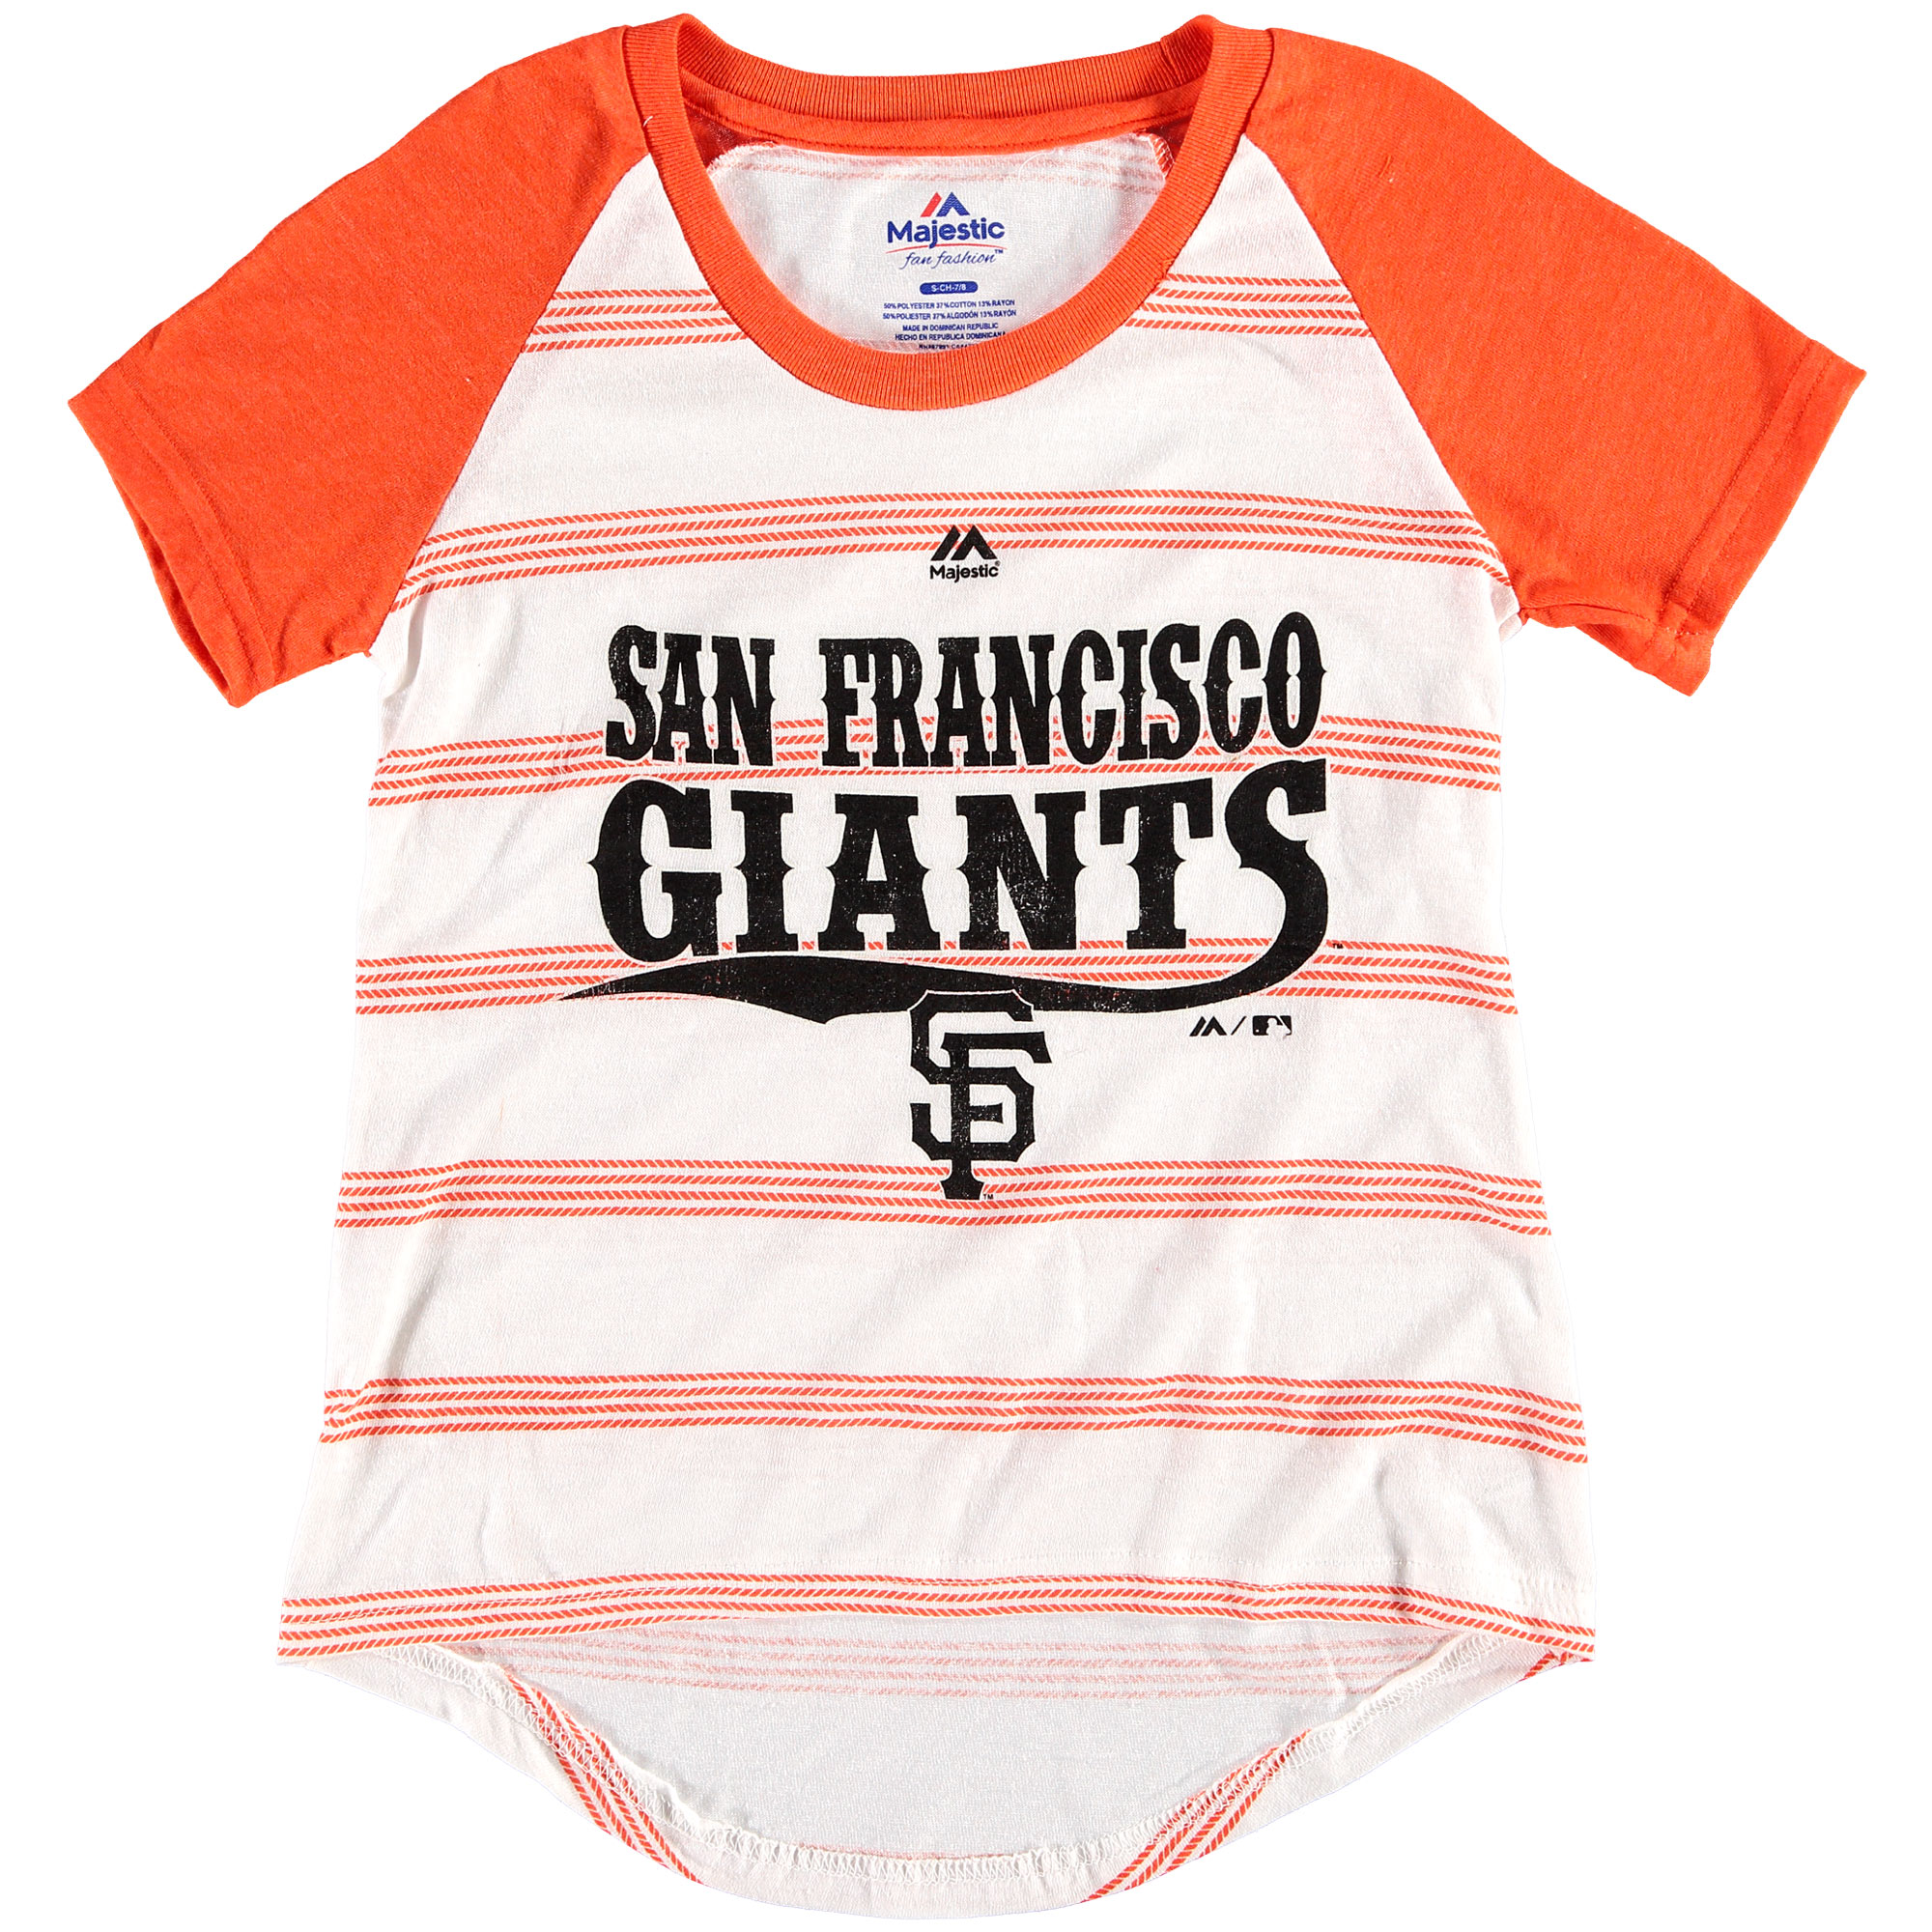 San Francisco Giants Majestic Girls Youth Pinstripes Raglan Tri-Blend T-Shirt - White/Black